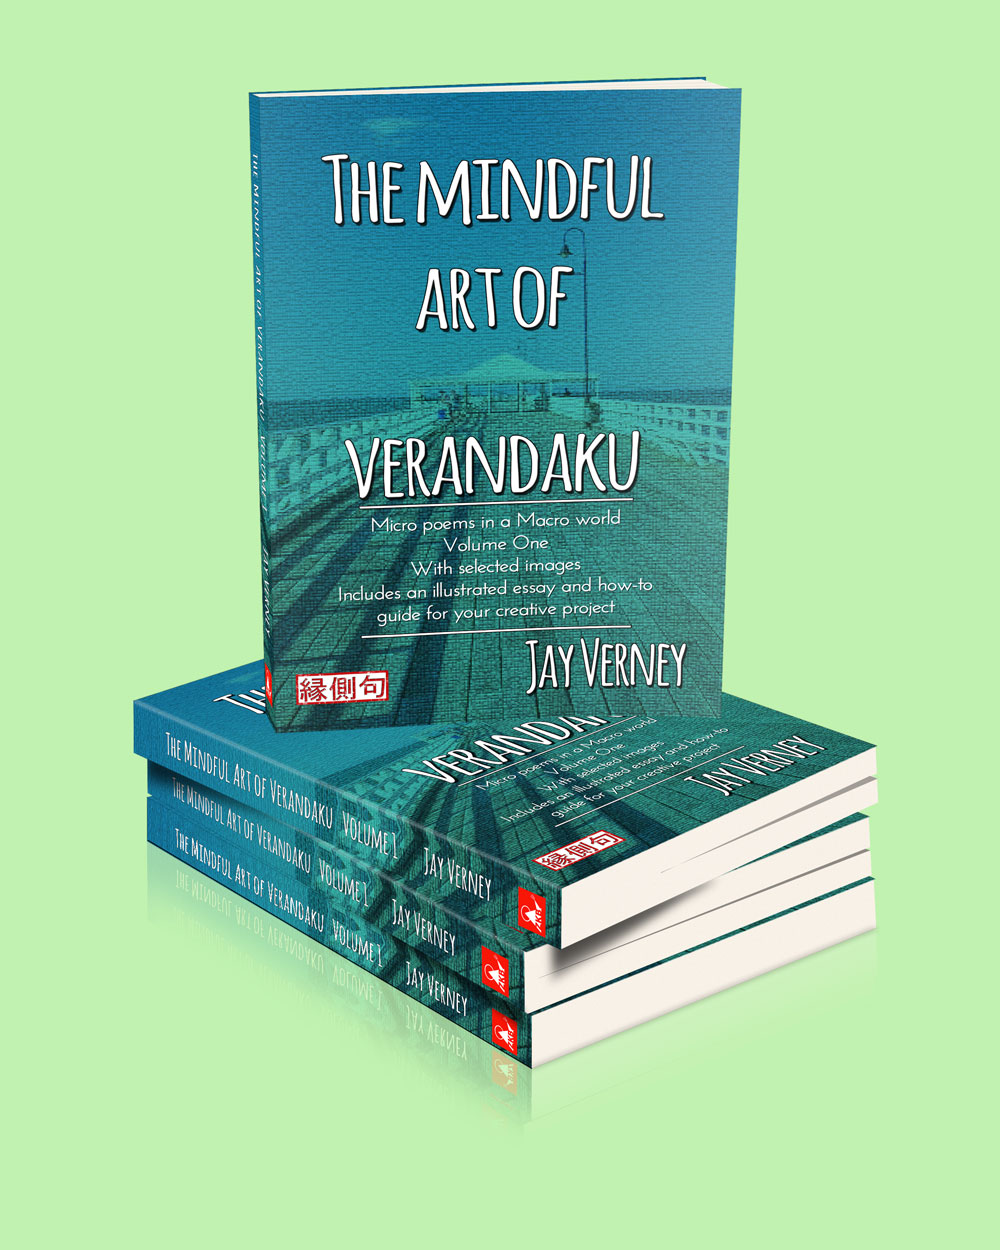 The Mindful Art Of Verandaku Vol 1